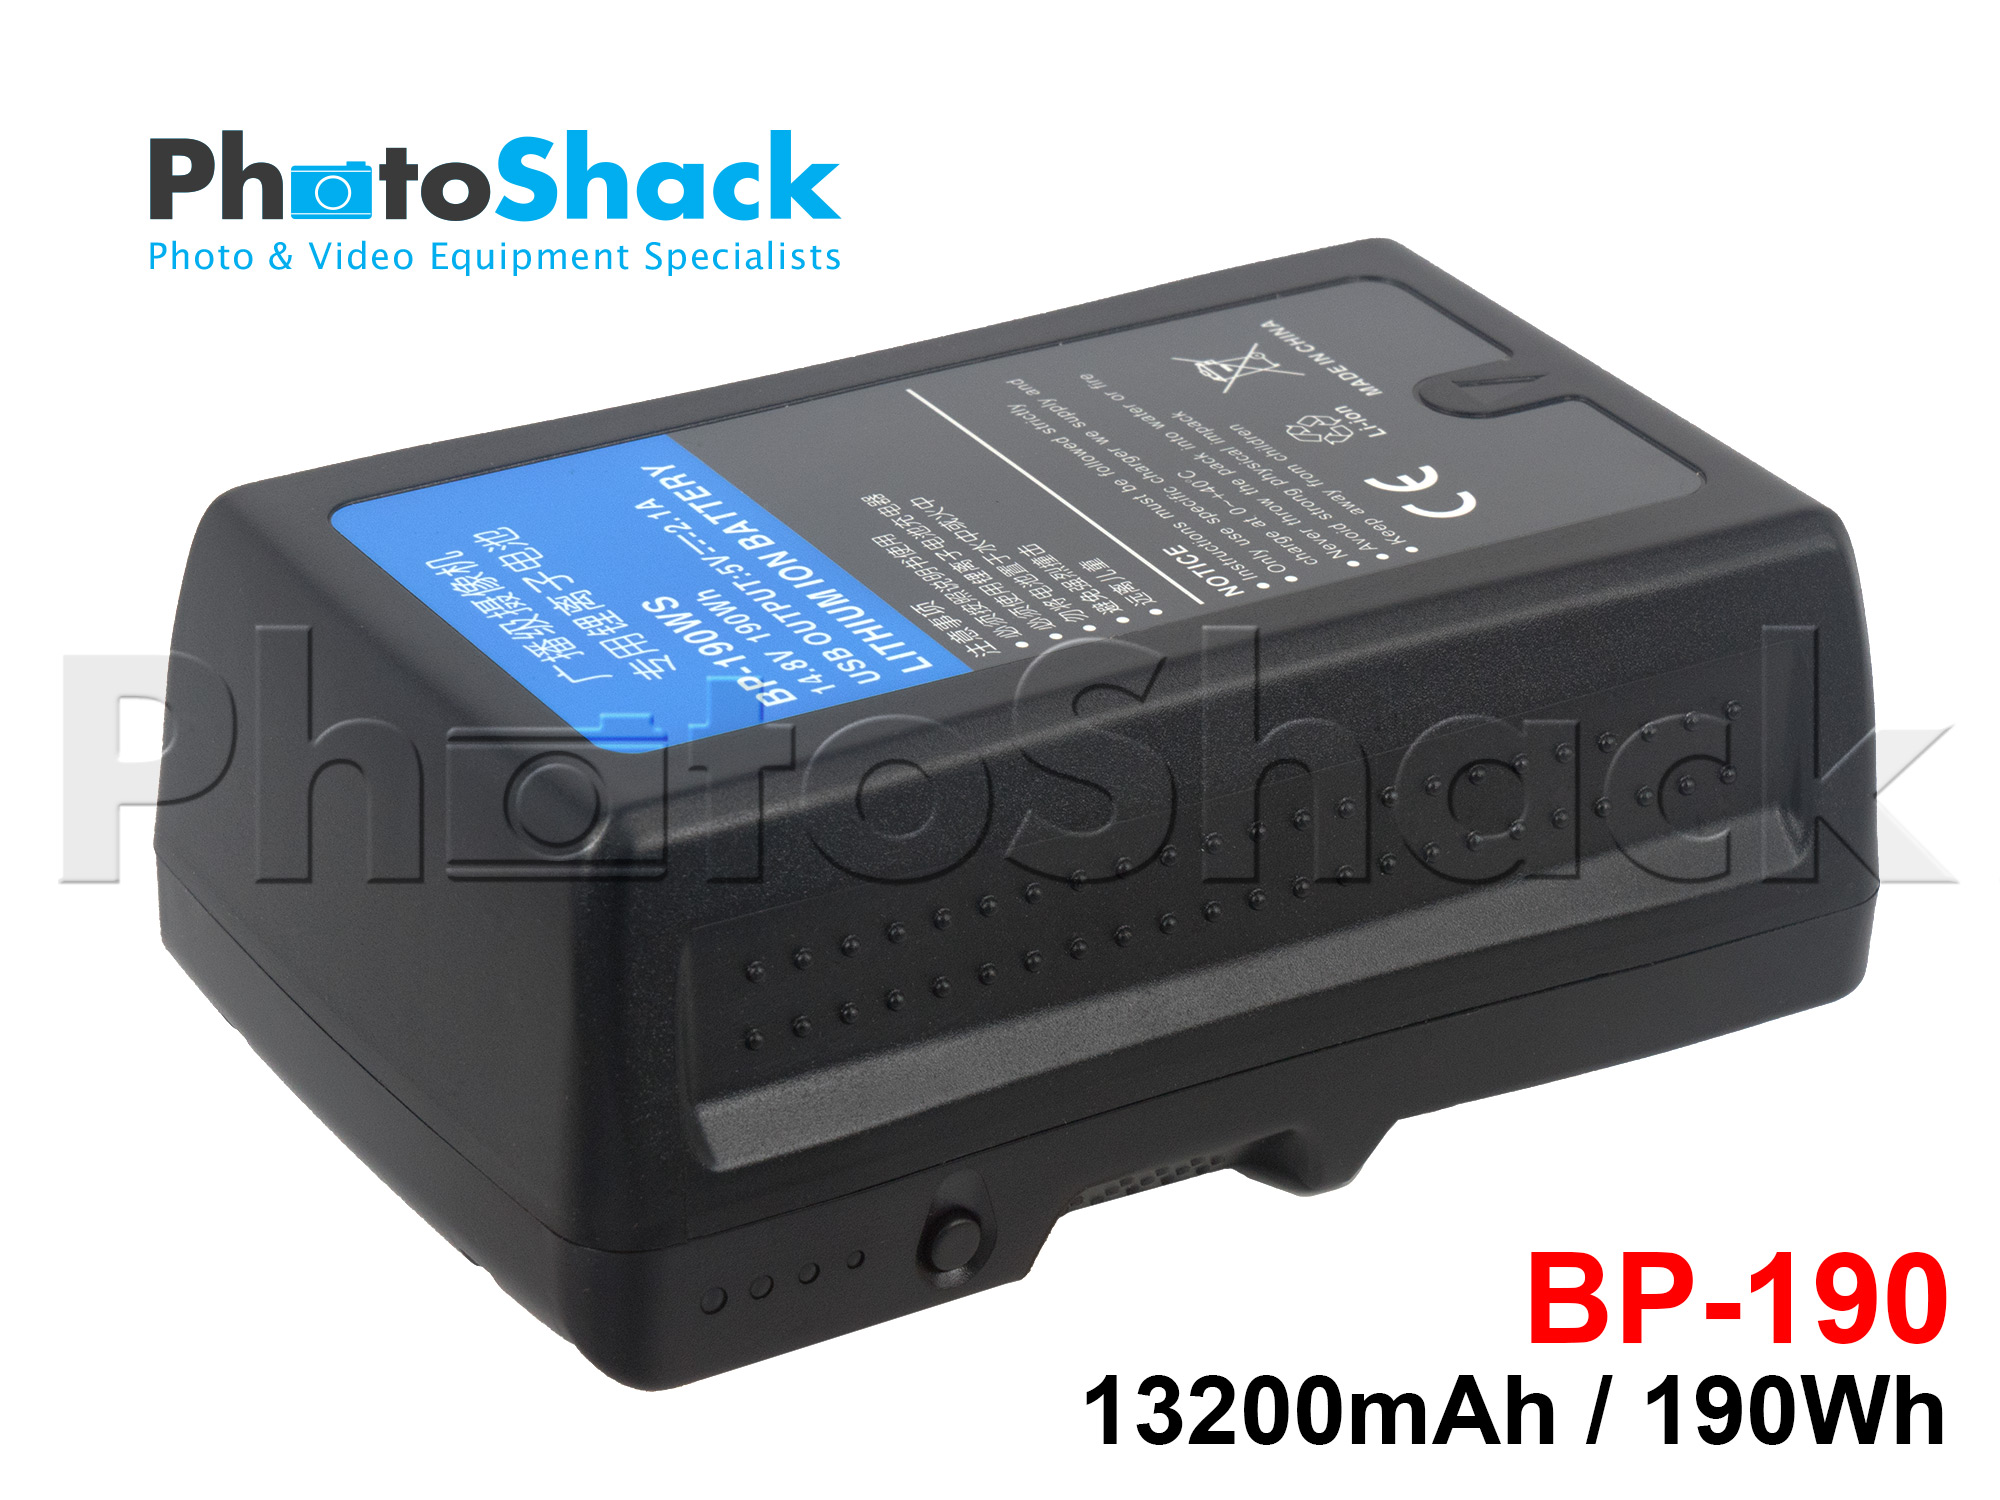 V-lock Battery - 13200mAh 190Wh - BP-190